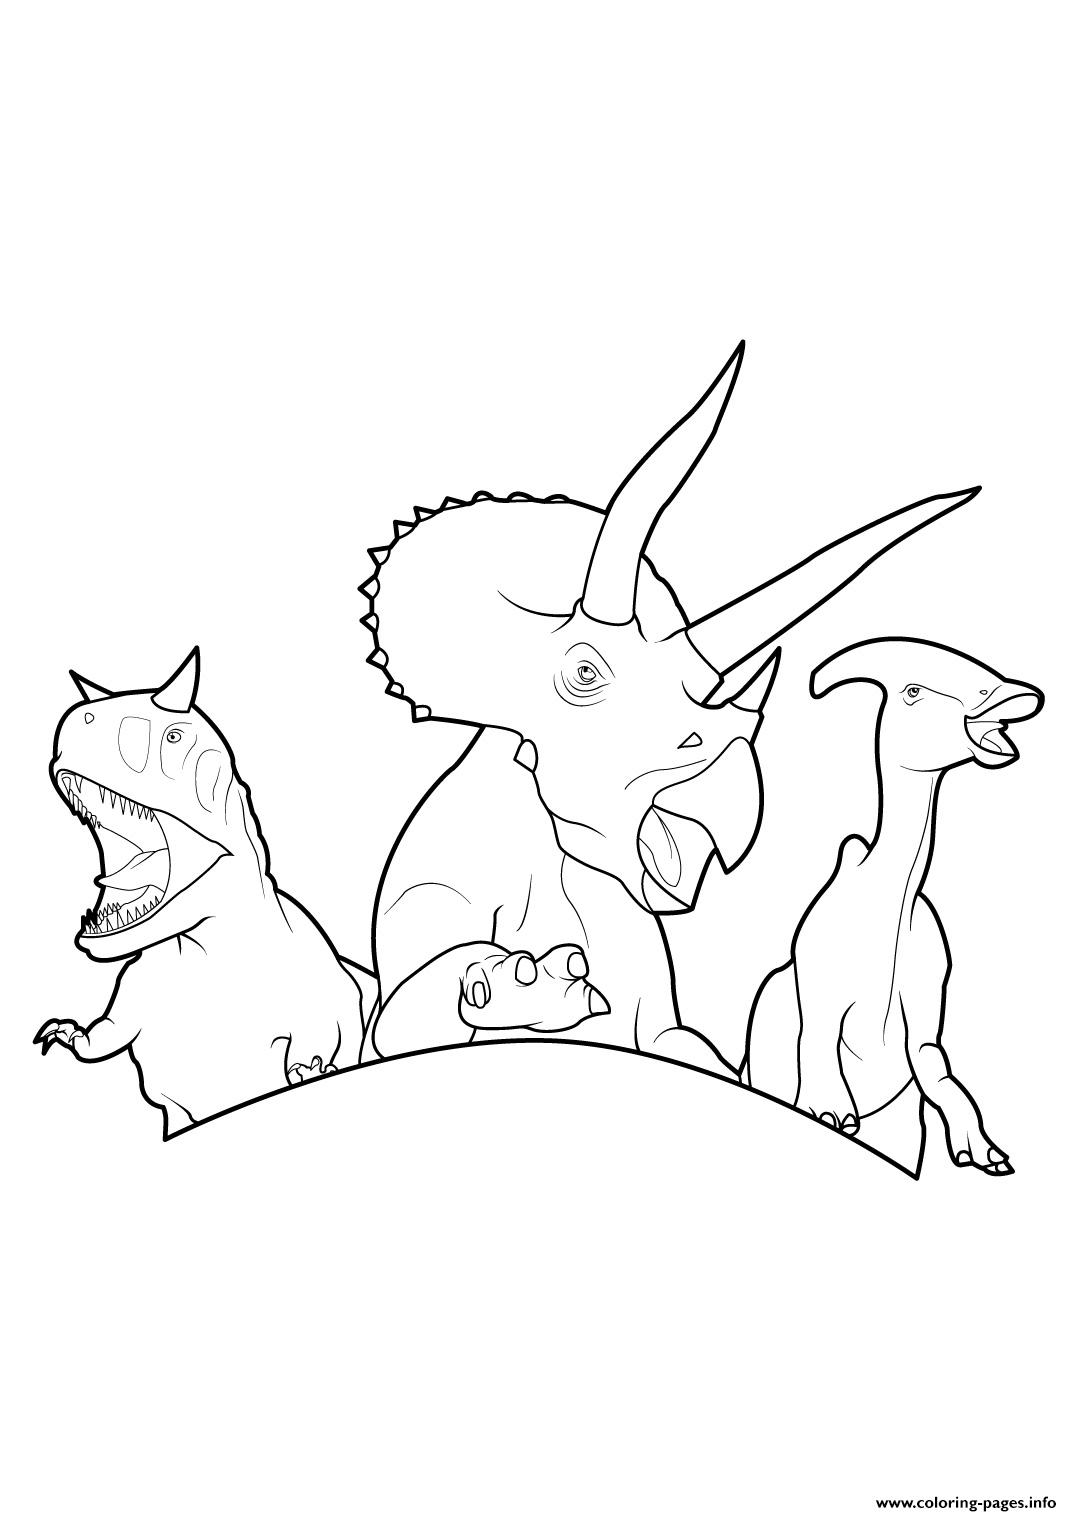 Dinosaur 363 coloring pages